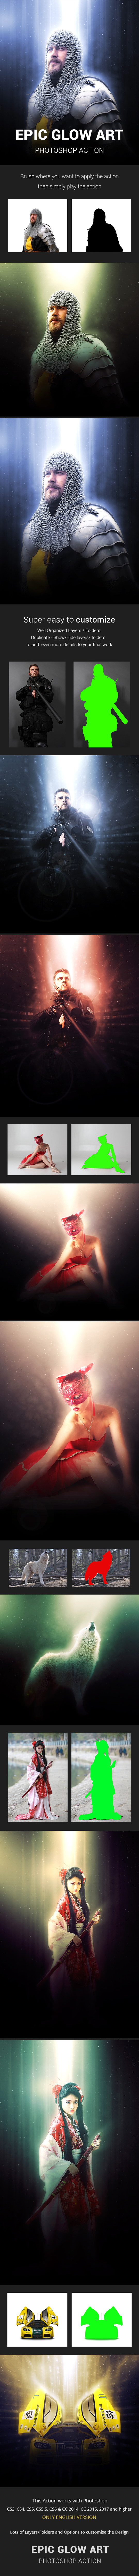 Epic Glow Art Photoshop Action - Photo Effects Actions